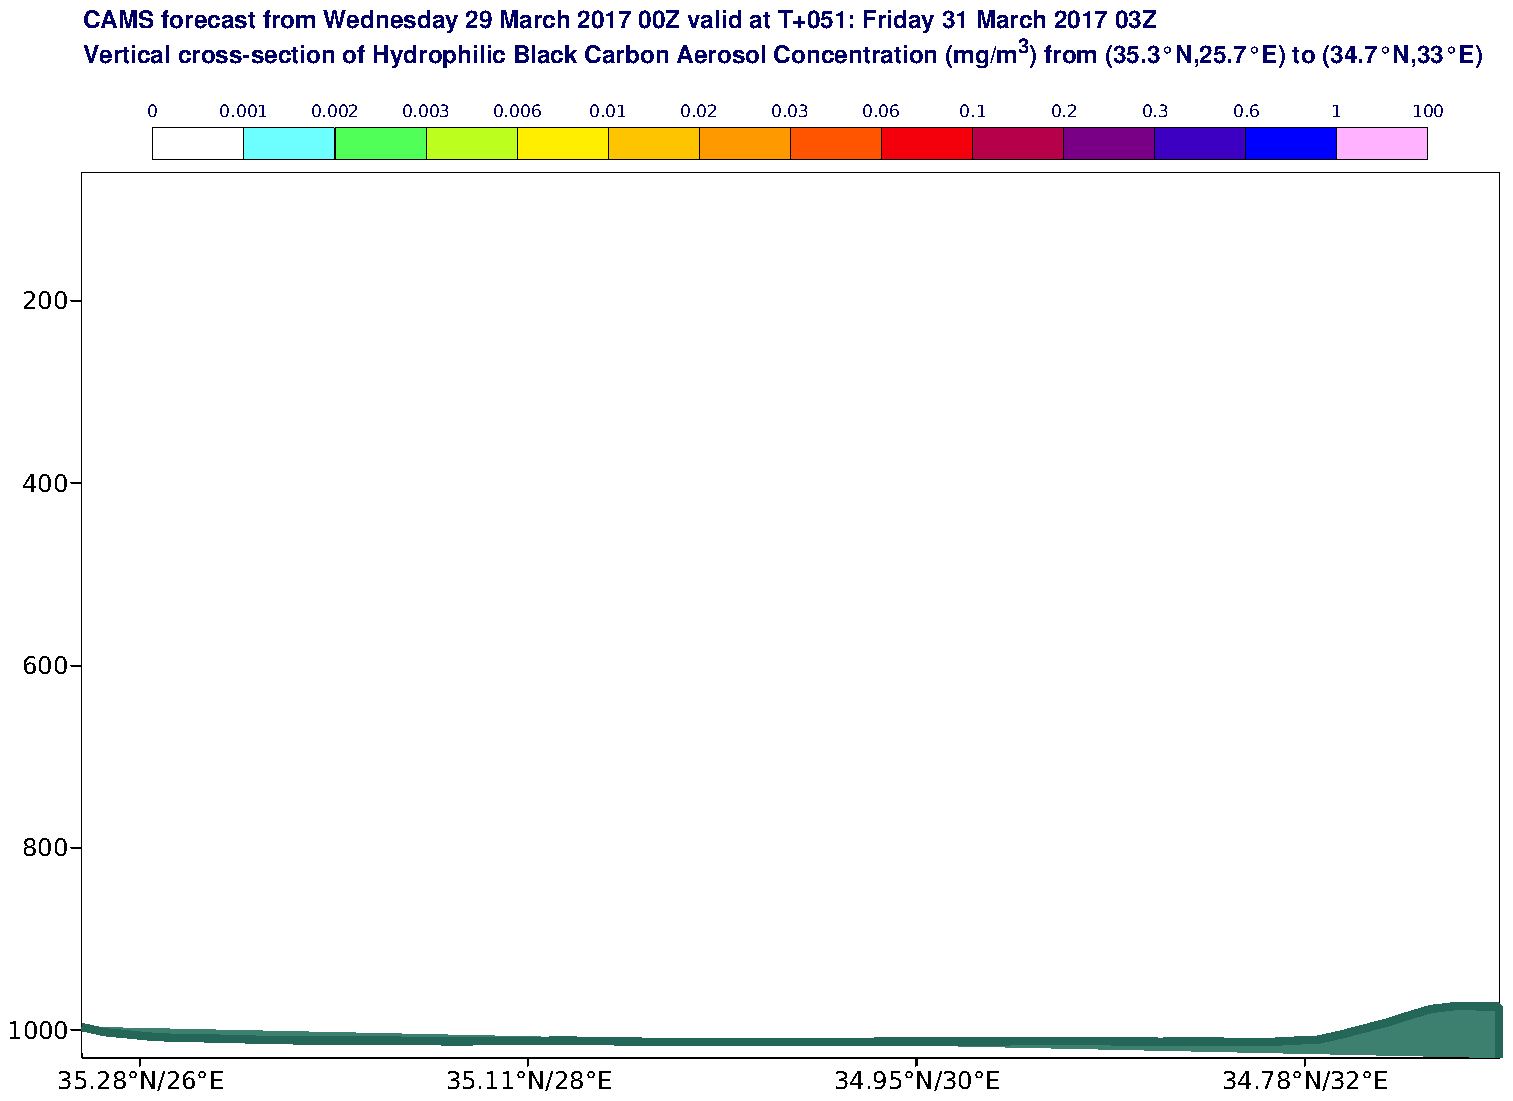 Vertical cross-section of Hydrophilic Black Carbon Aerosol Concentration (mg/m3) valid at T51 - 2017-03-31 03:00